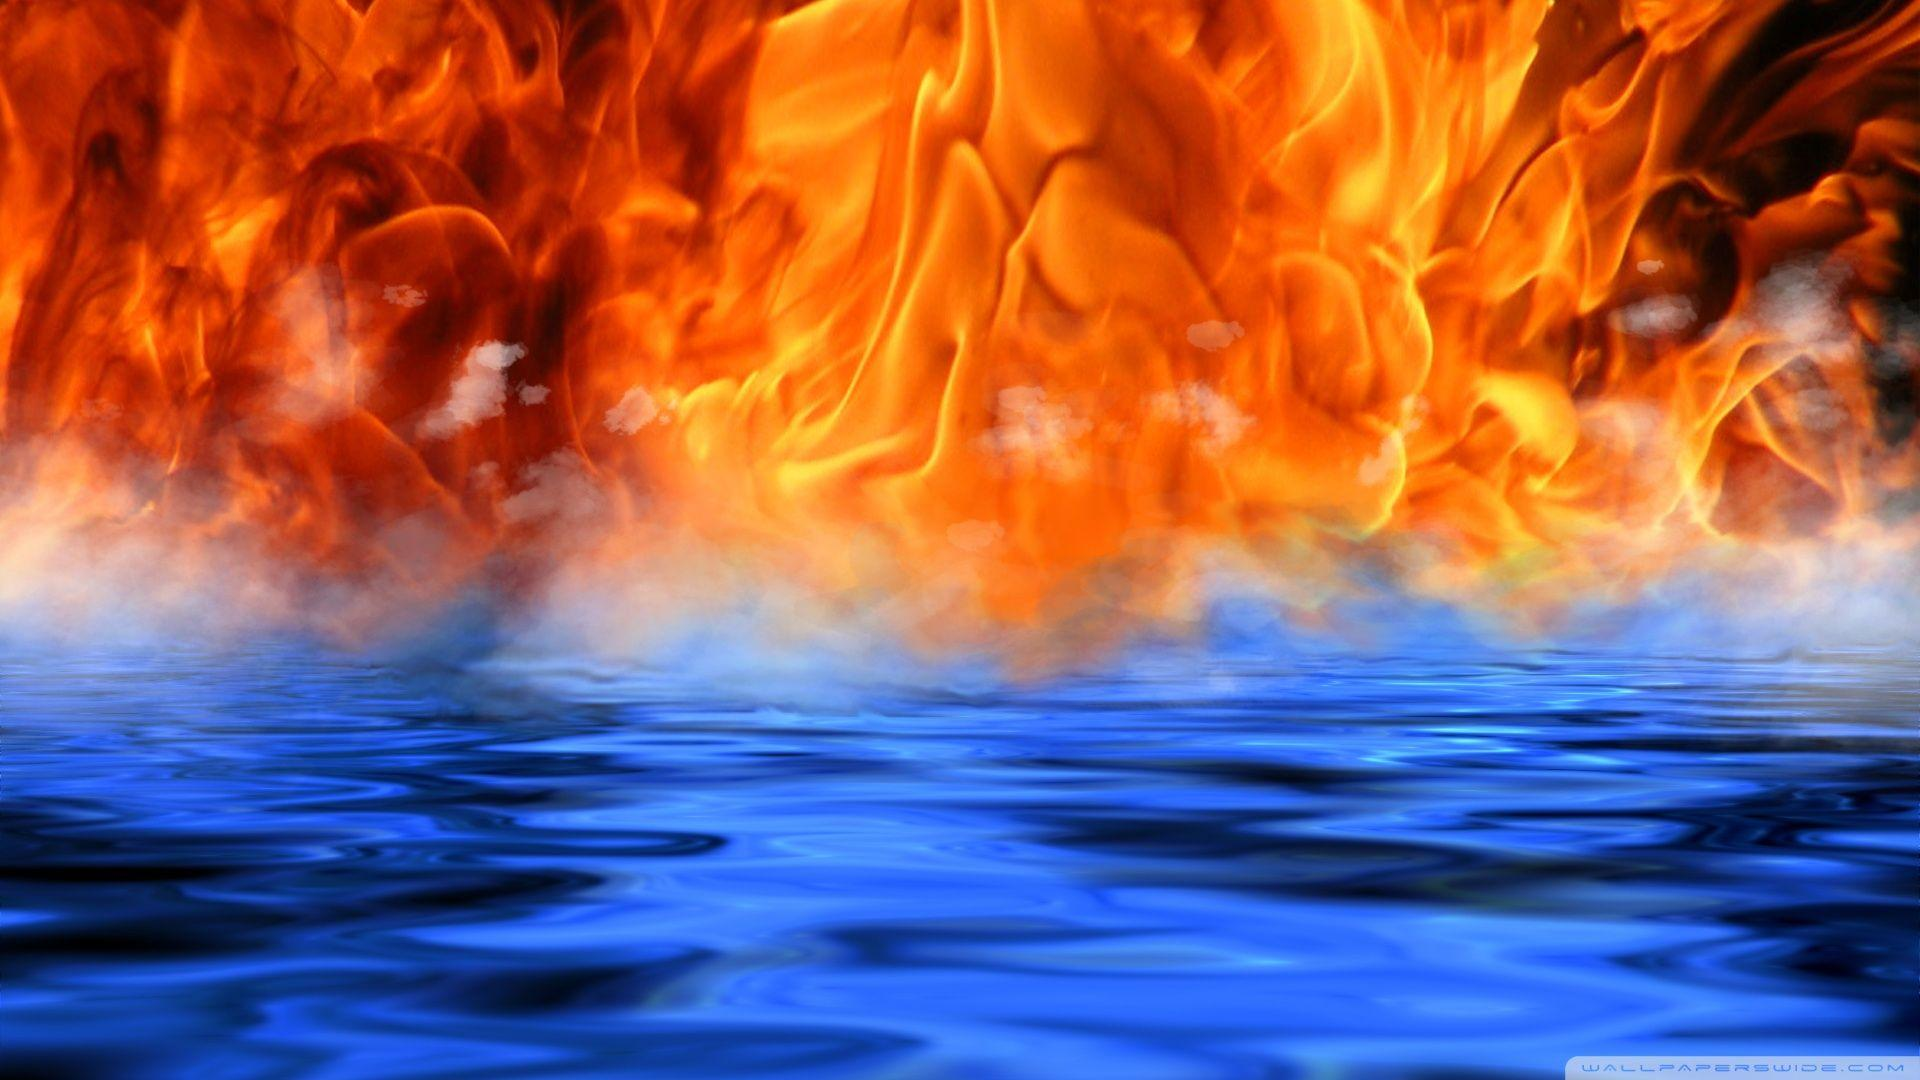 Fire And Water Wallpaper Backgrounds Wallpaper Cave